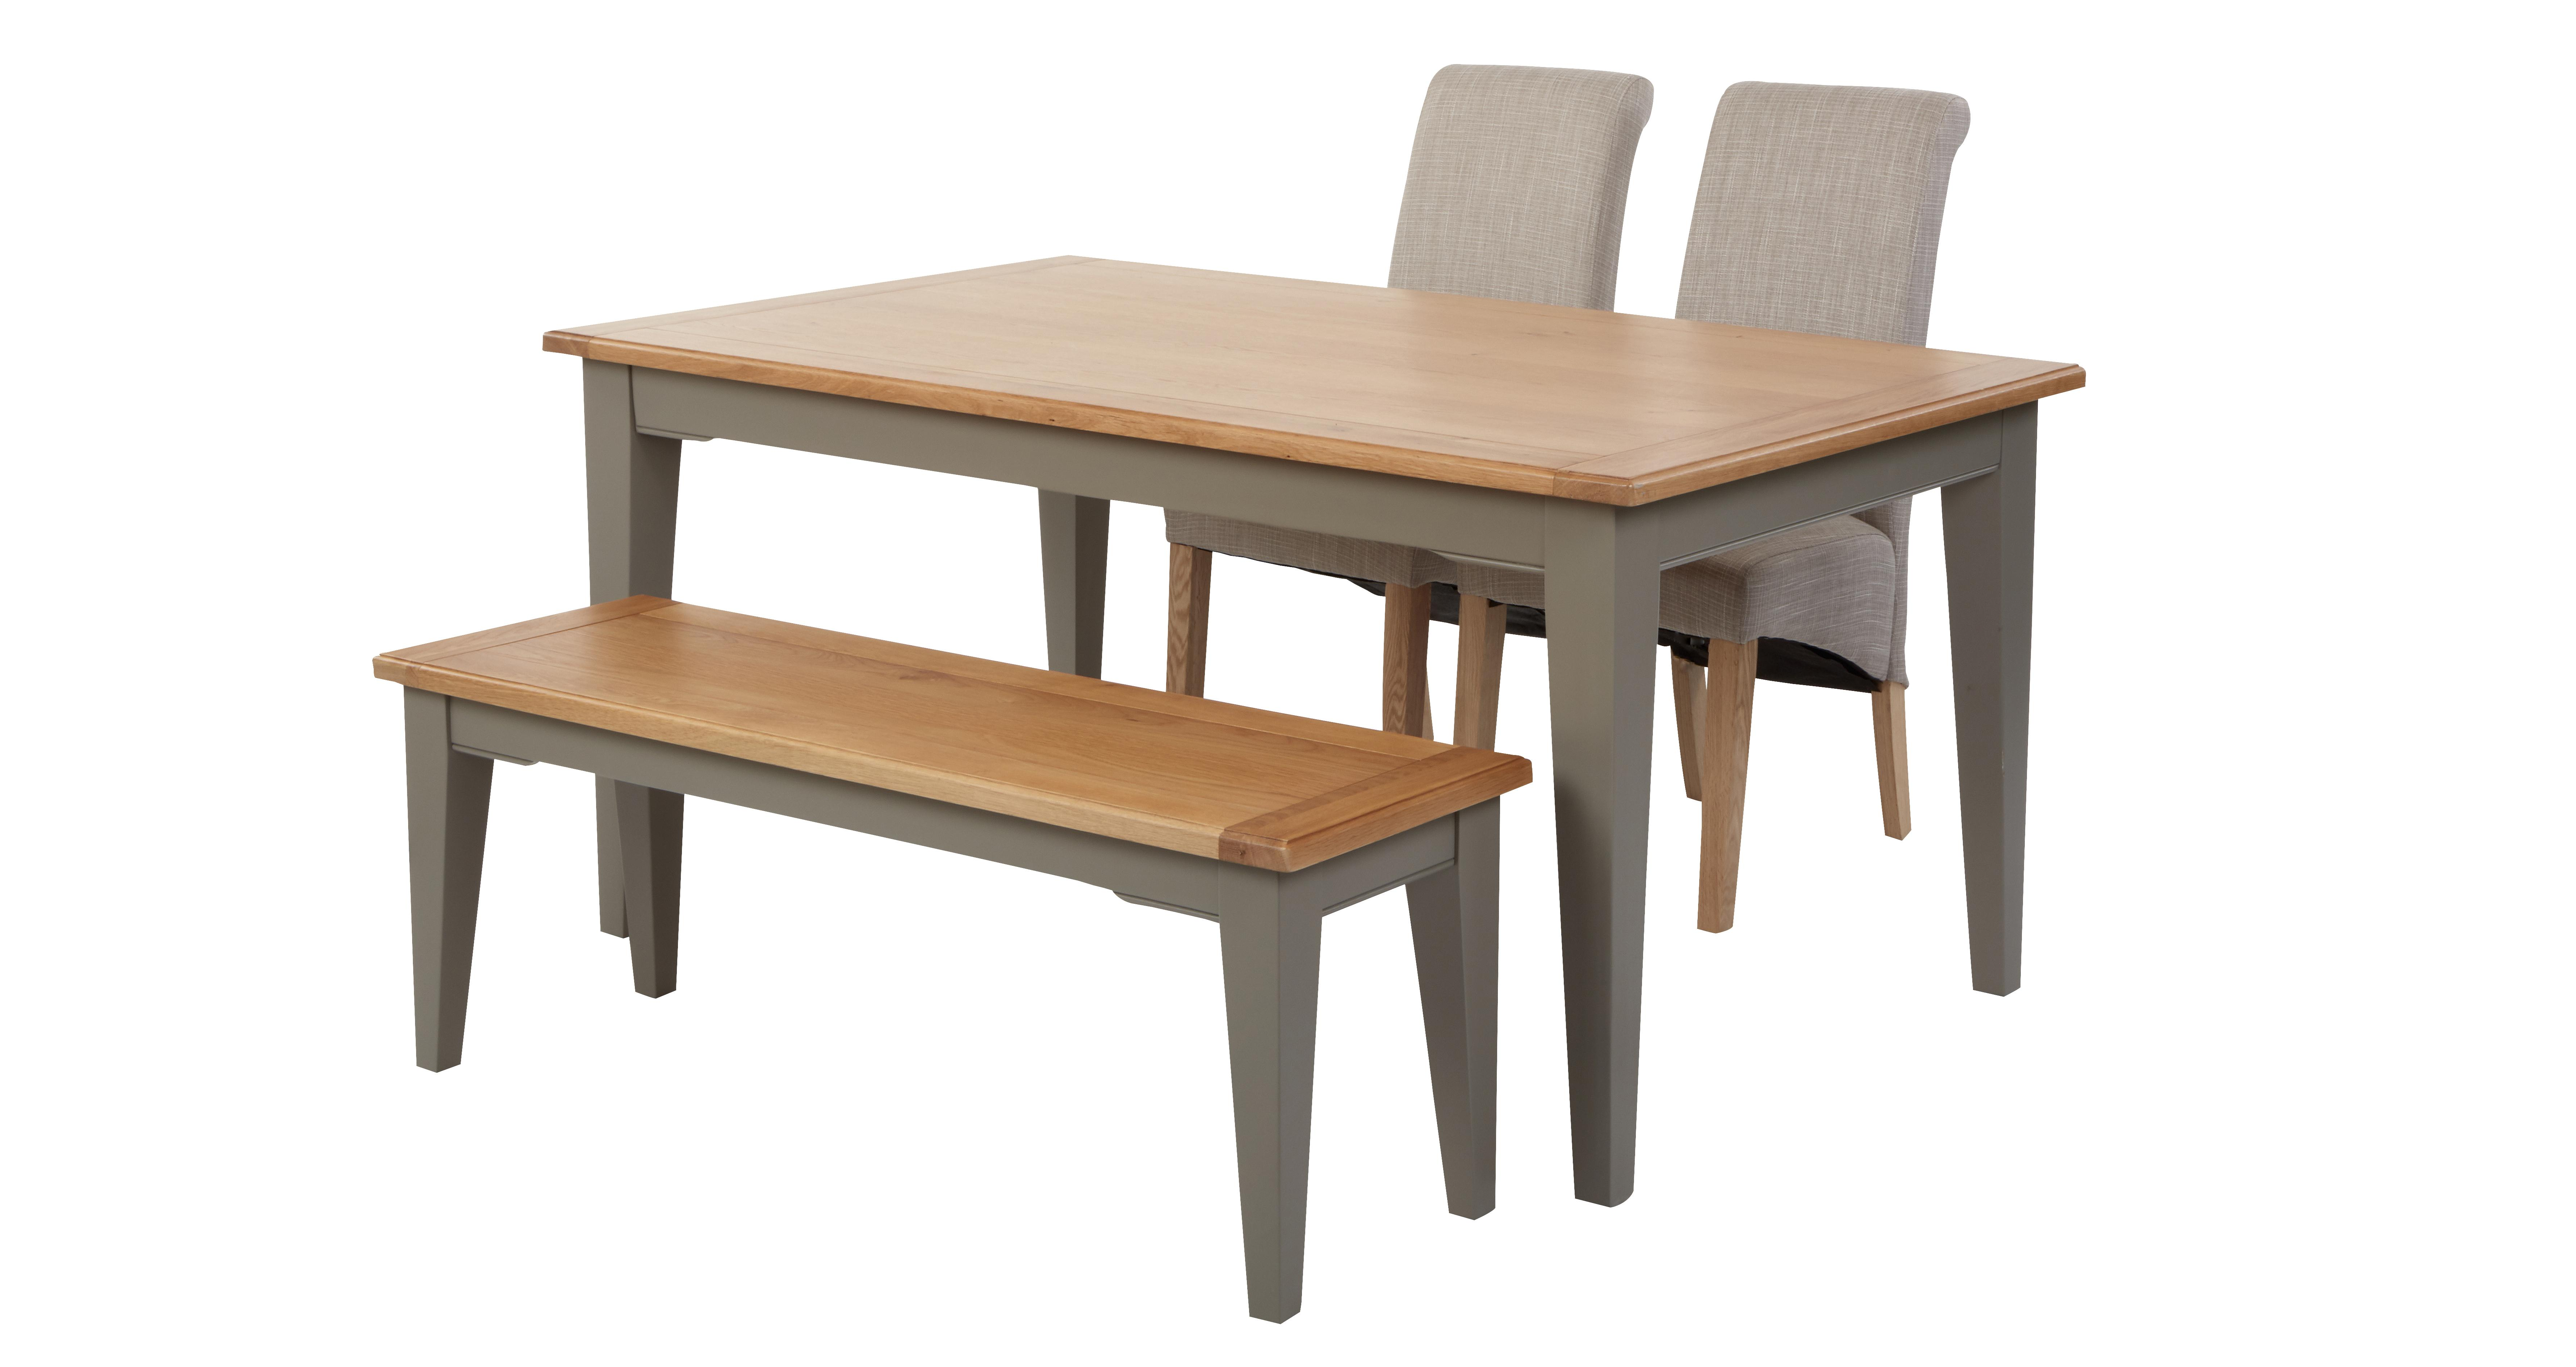 Remarkable Helmsley Dining Fixed Top Table With 2 Upholstered Chairs 1 Bench Andrewgaddart Wooden Chair Designs For Living Room Andrewgaddartcom